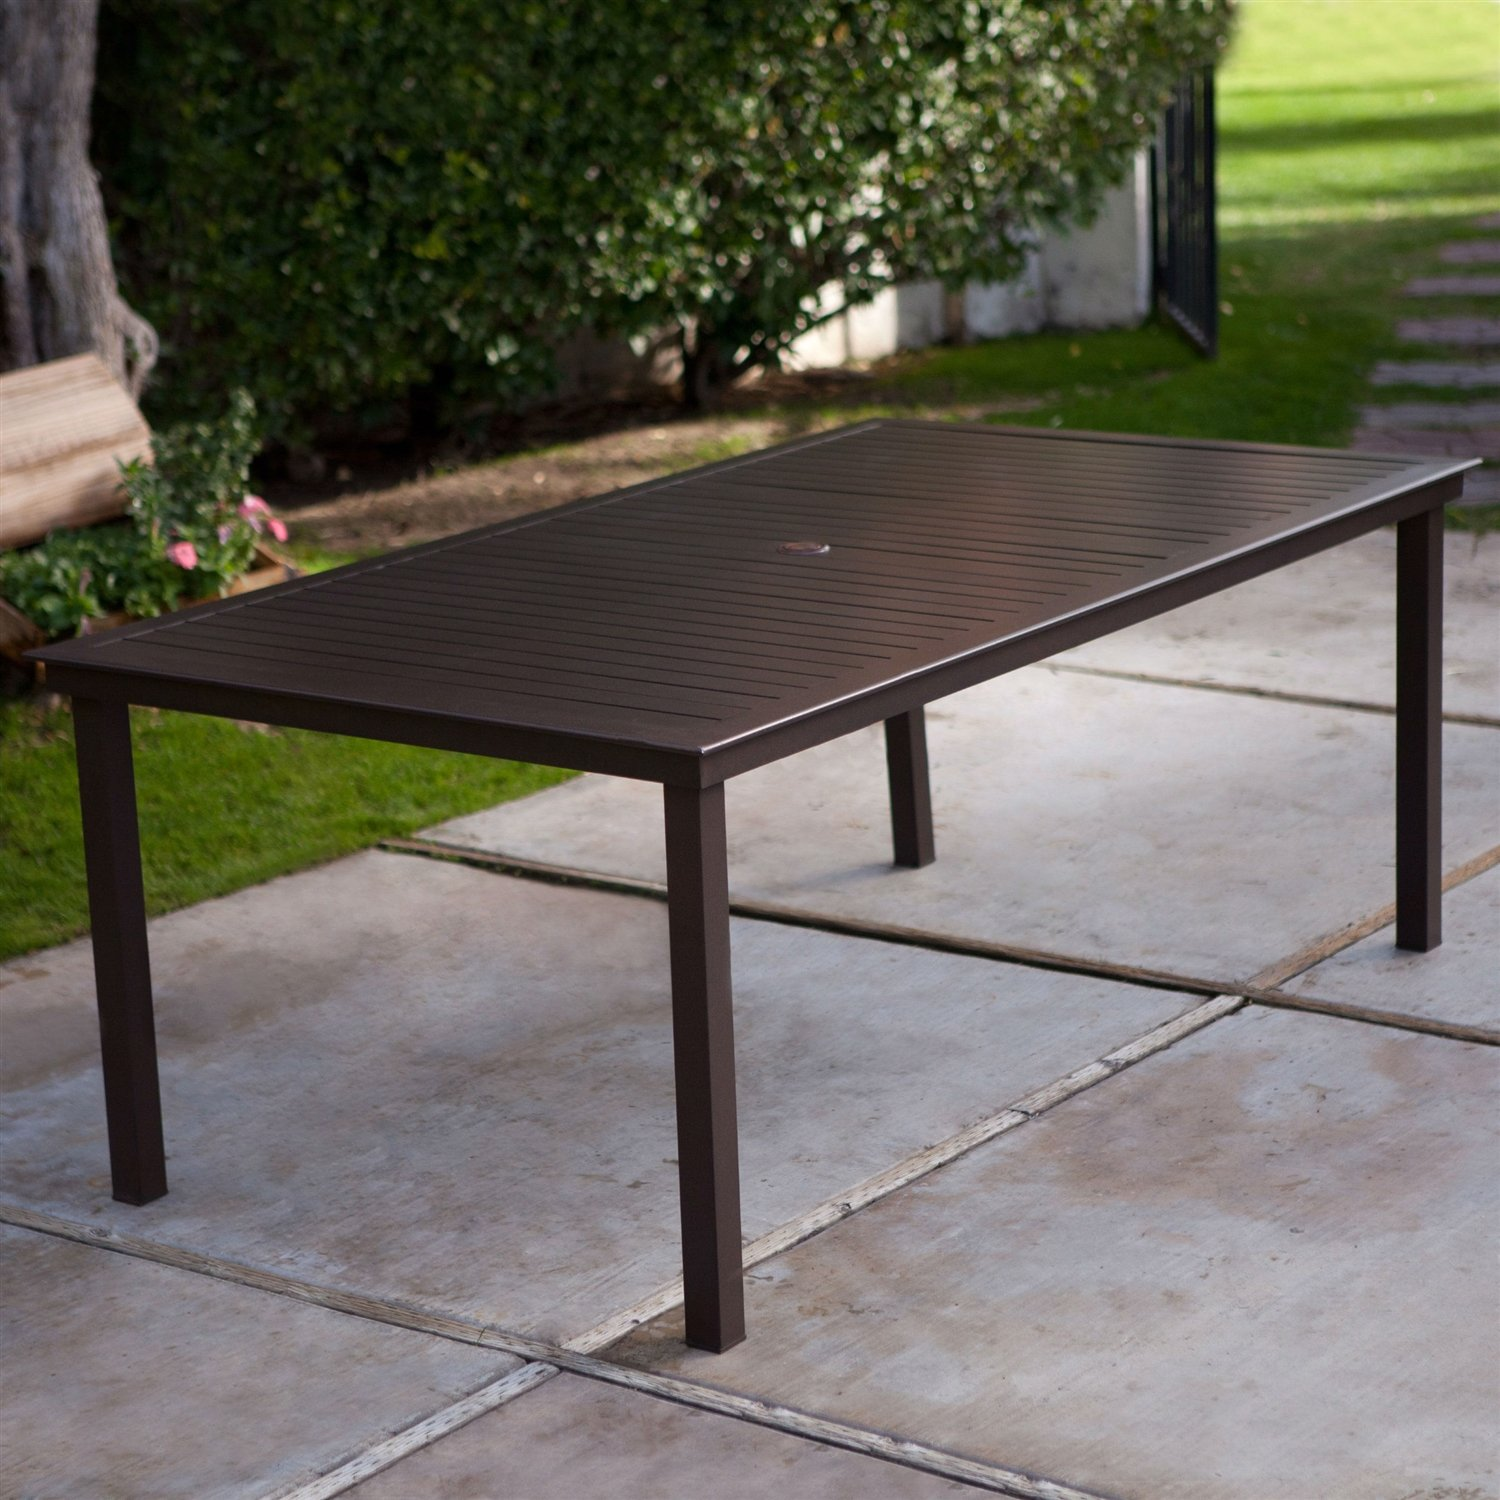 Rectangular 74 x 42 inch patio dining table in mocha brown with center umbrella hole